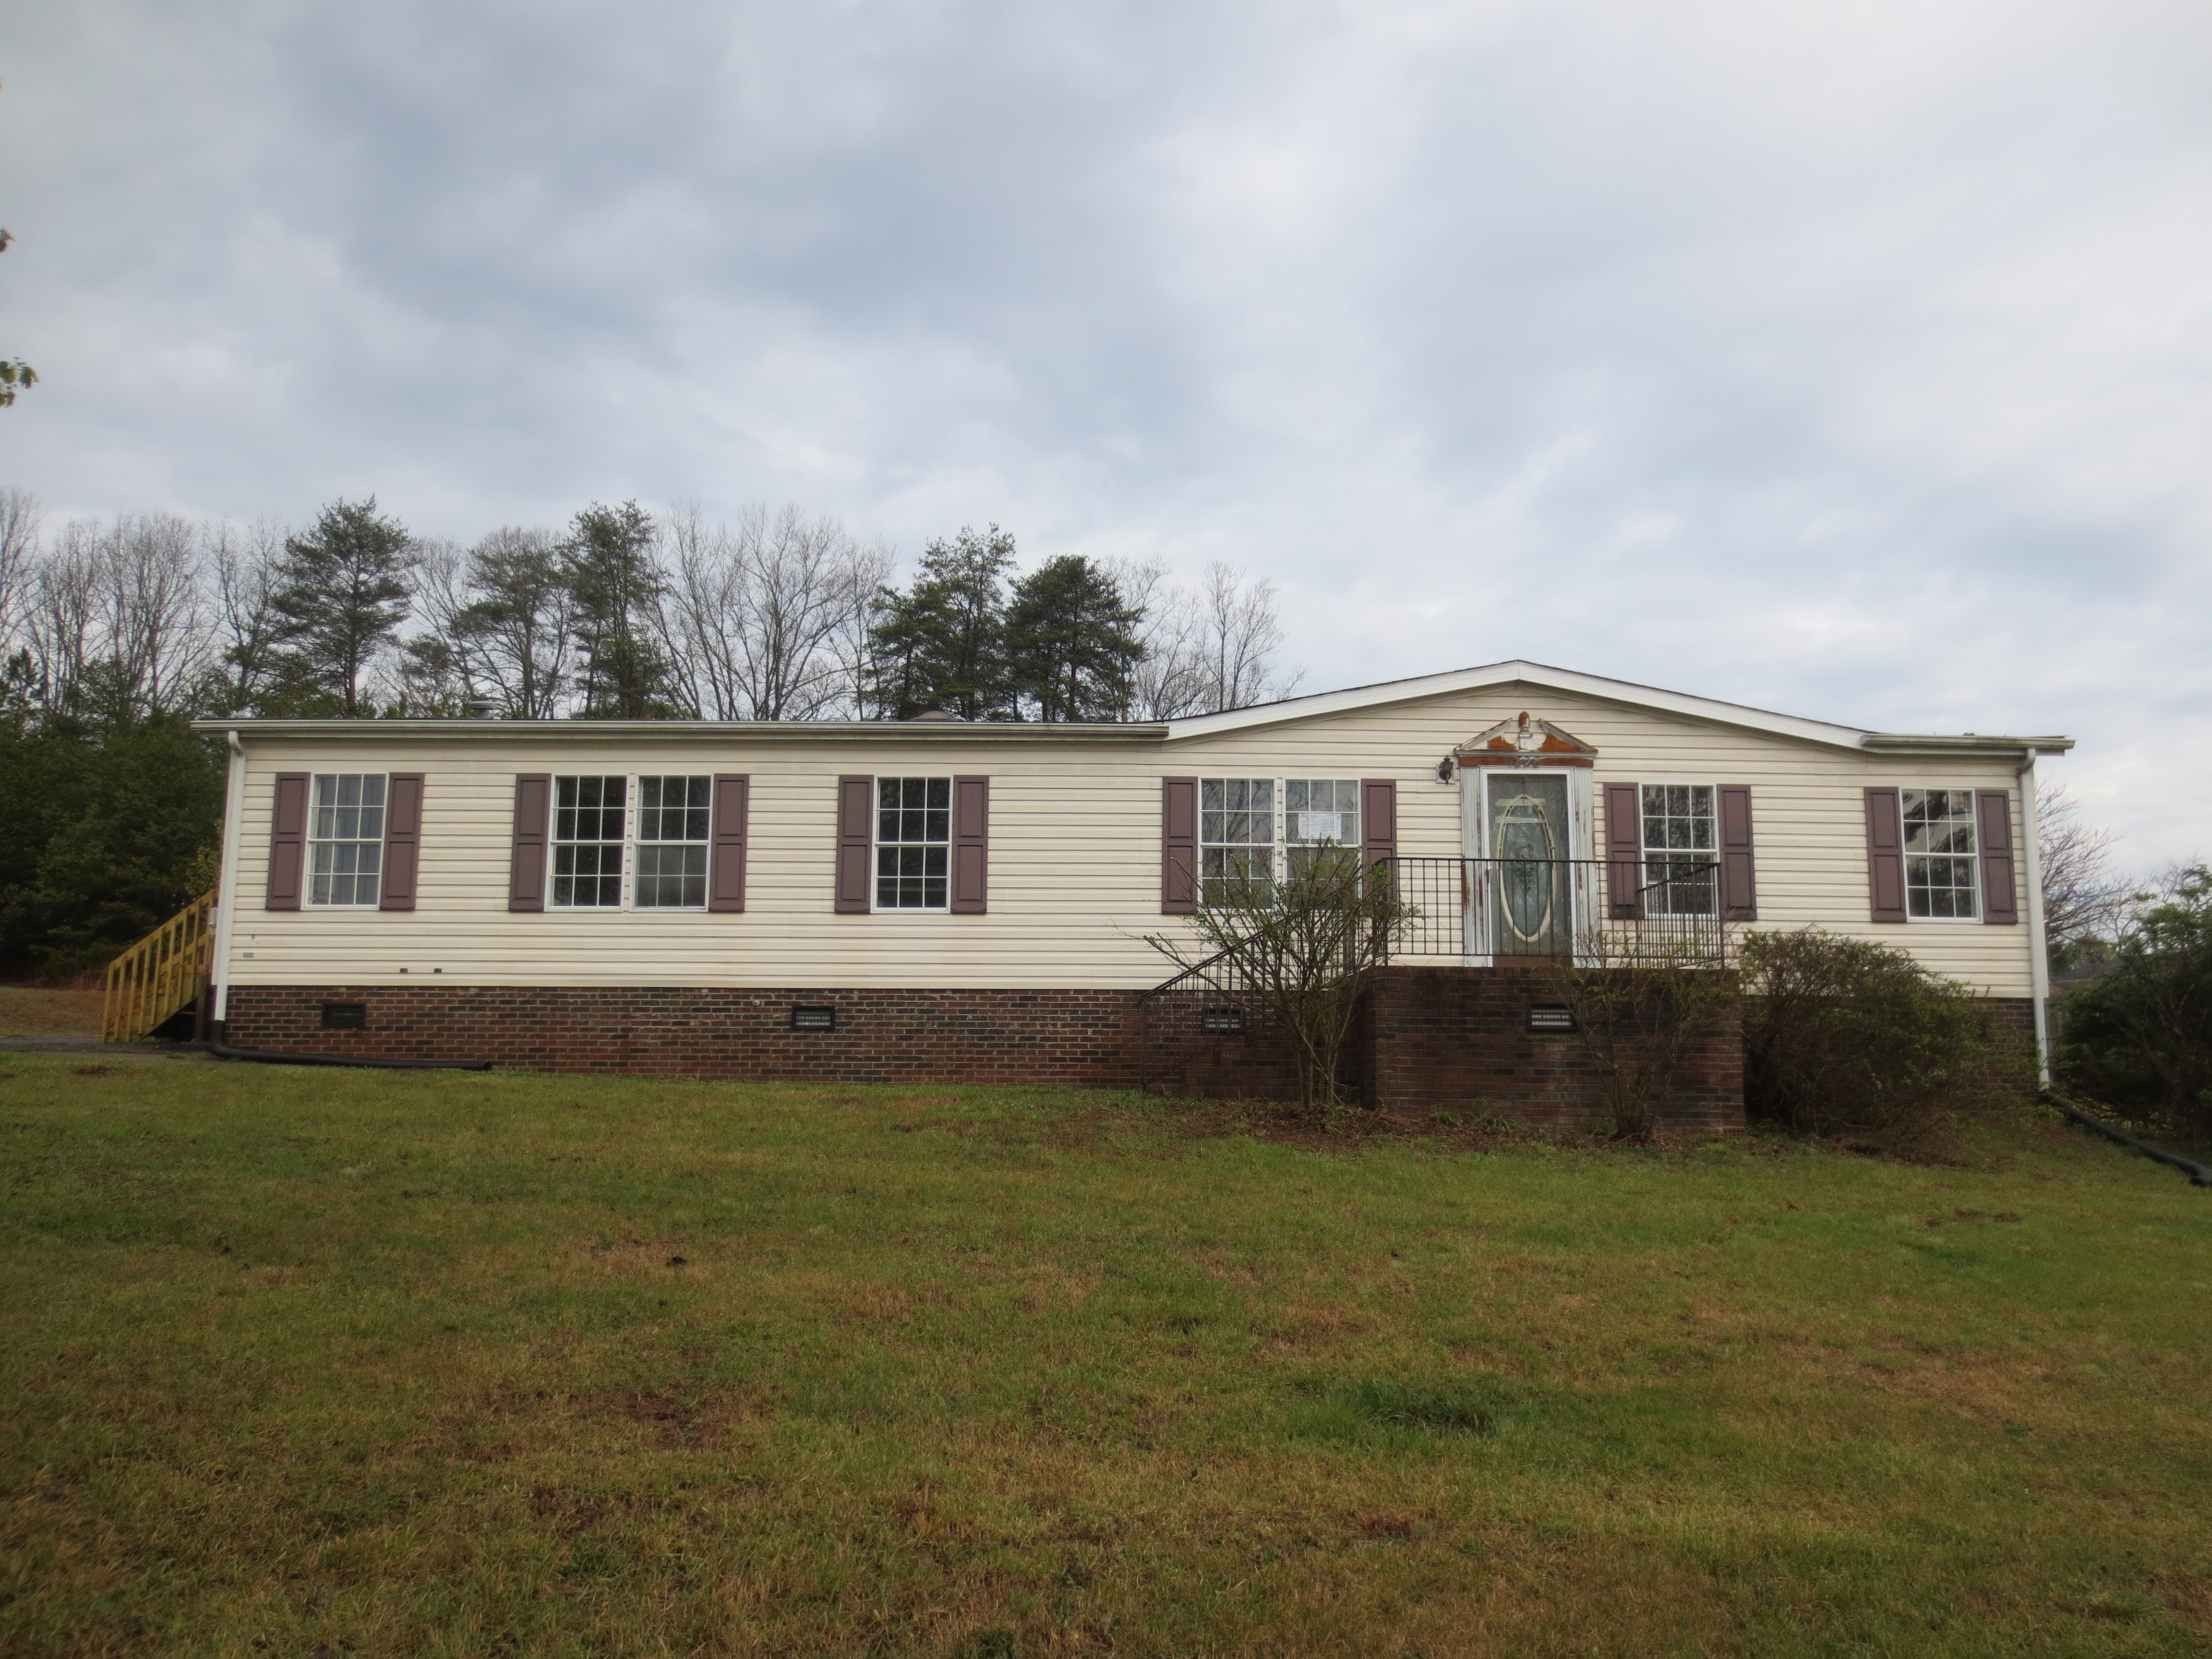 4828 Broken Pine LnGranite Falls, NC, 28630Caldwell County